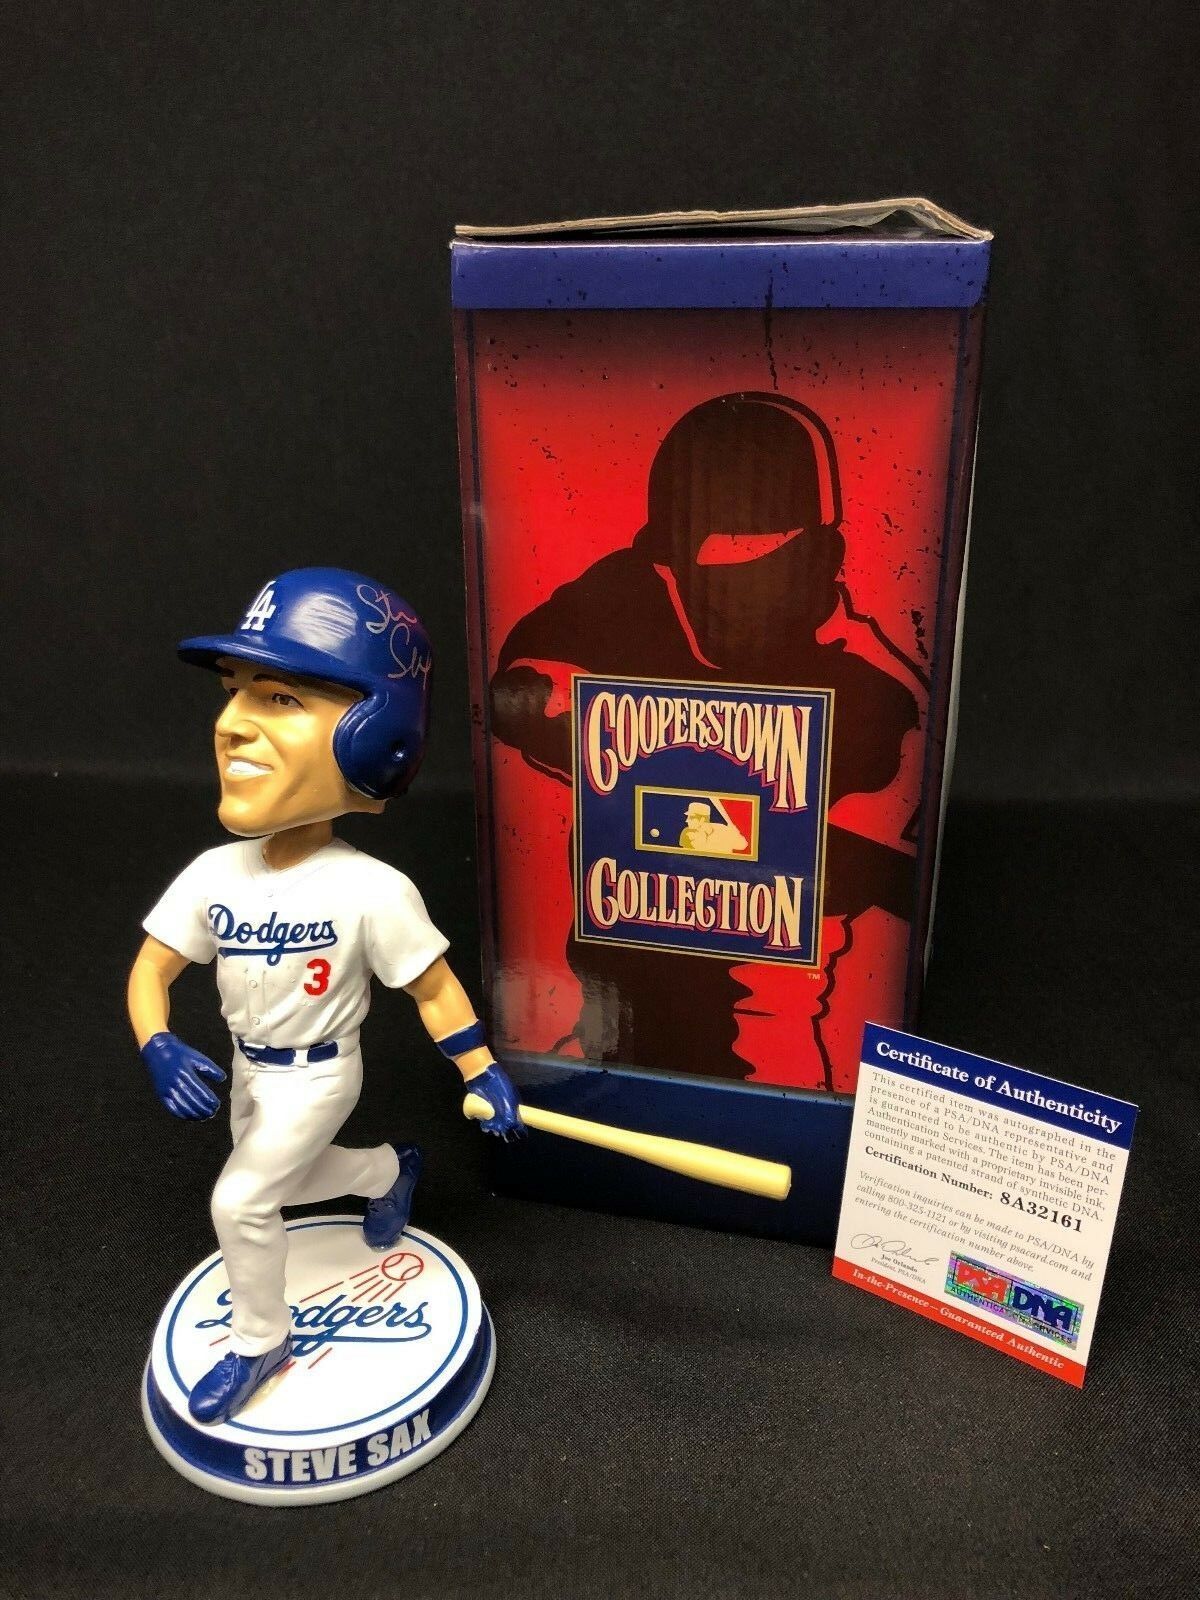 Steve Sax Signed Dodgers Cooperstown Collection Baseball Bobble-Head PSA